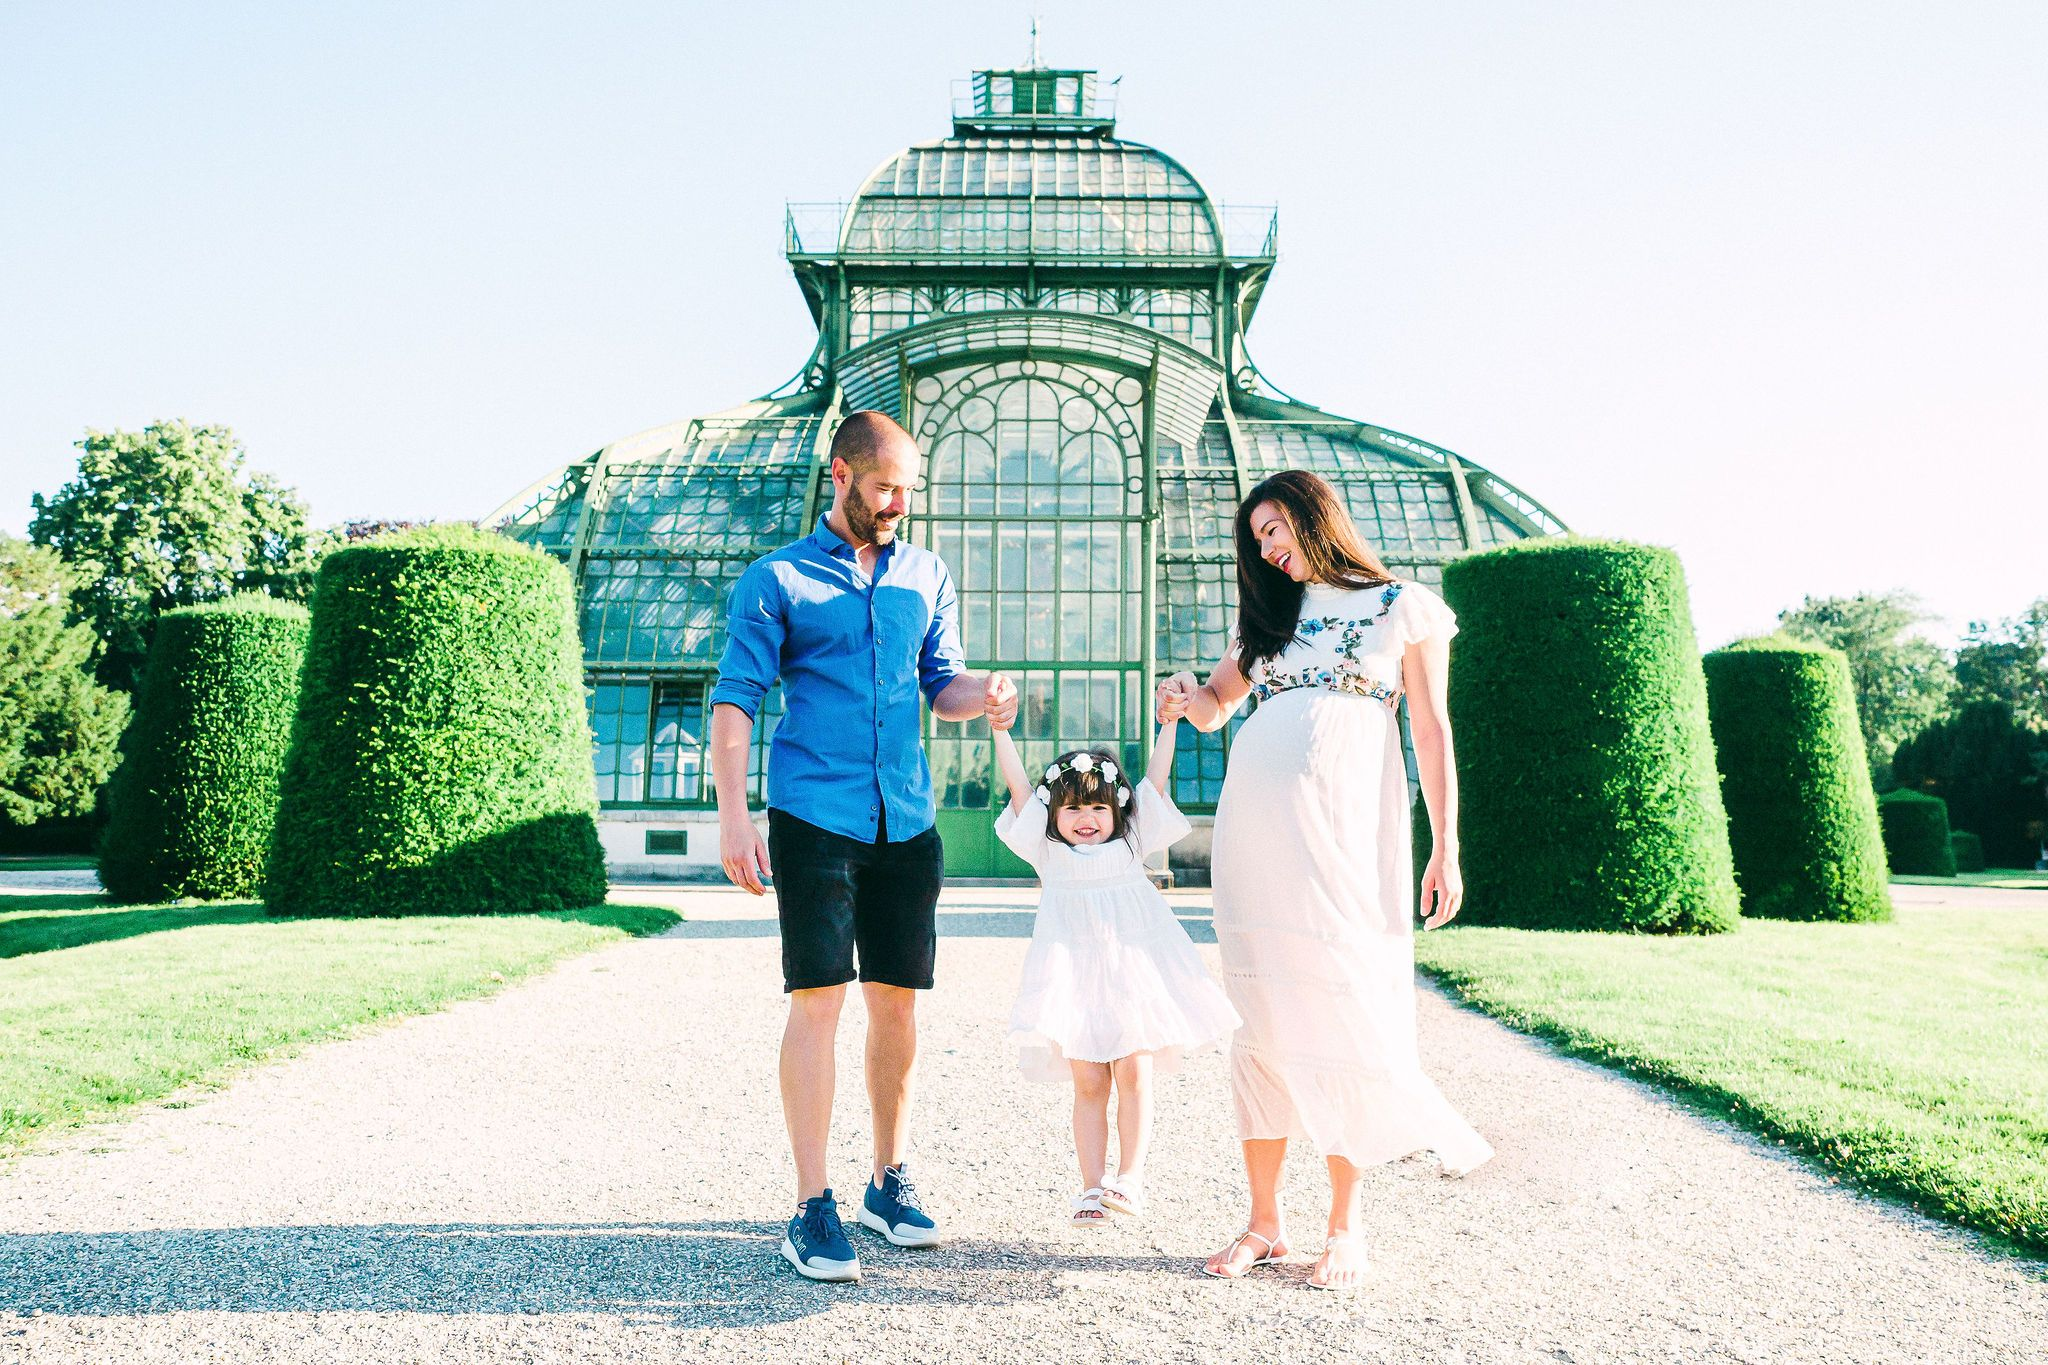 Pregnant mother and father swinging their dauther in a bright sunny day at the Schönbrunn Palmenhaus in Vienna